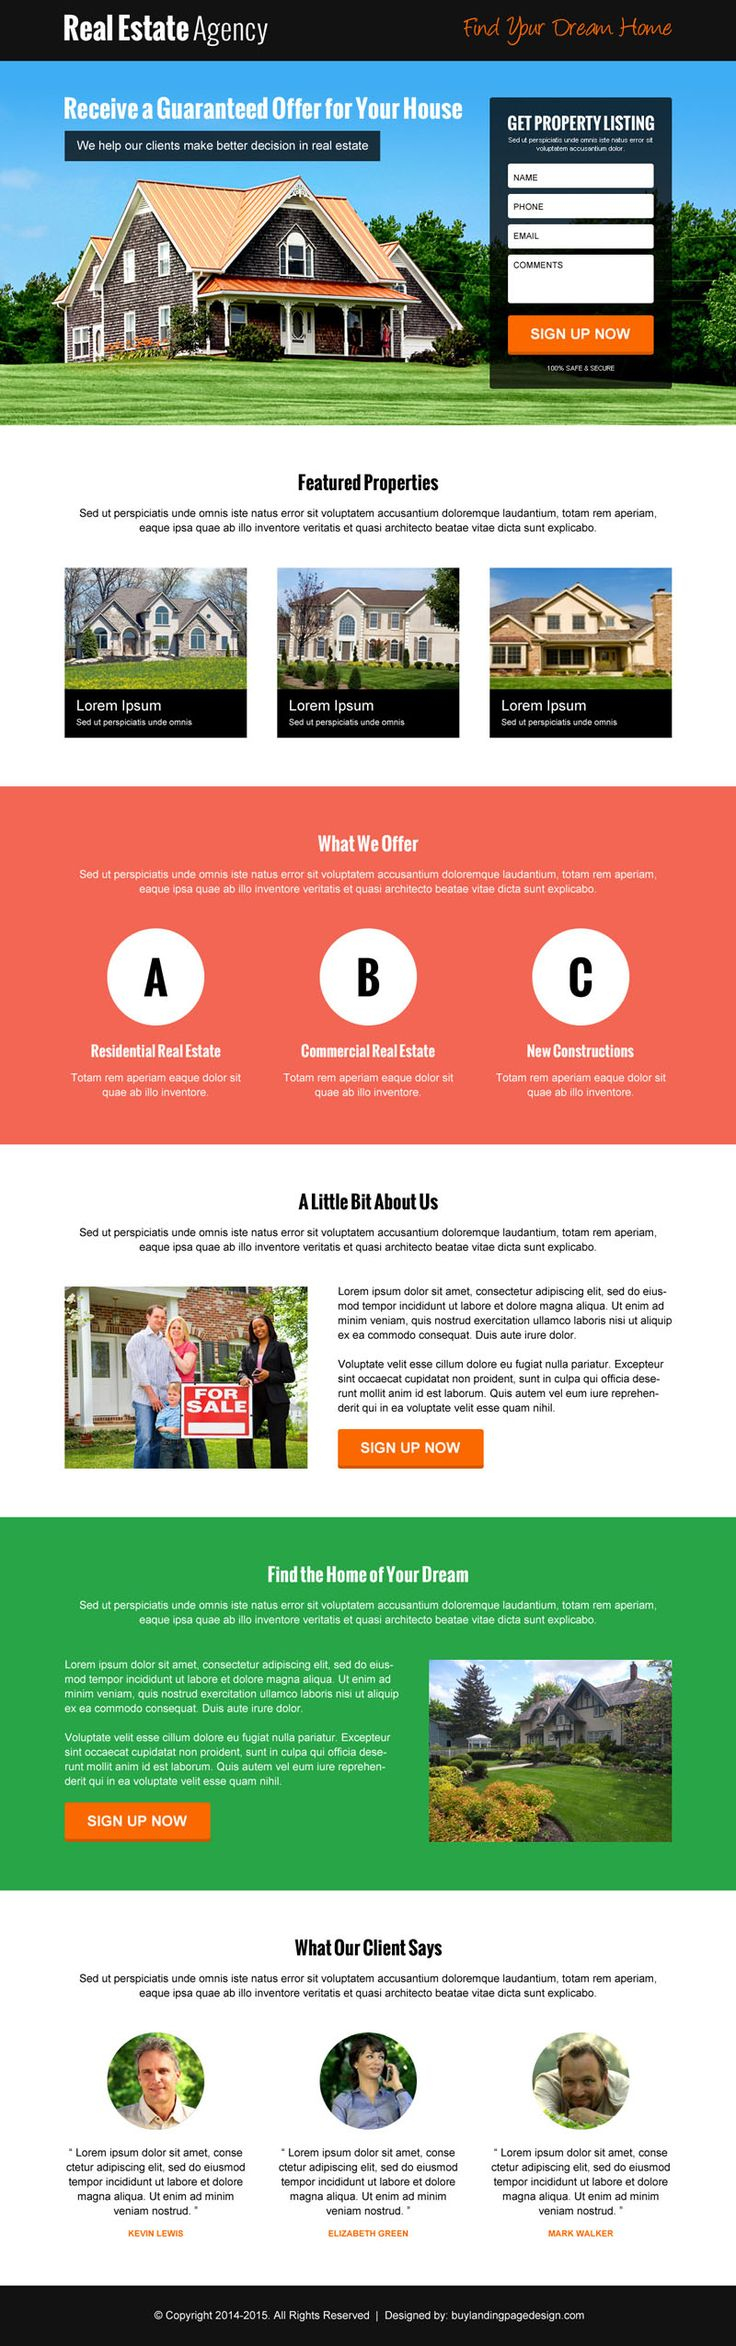 10 Beautiful landing page examples to turn traffic into money | Converting landing page design